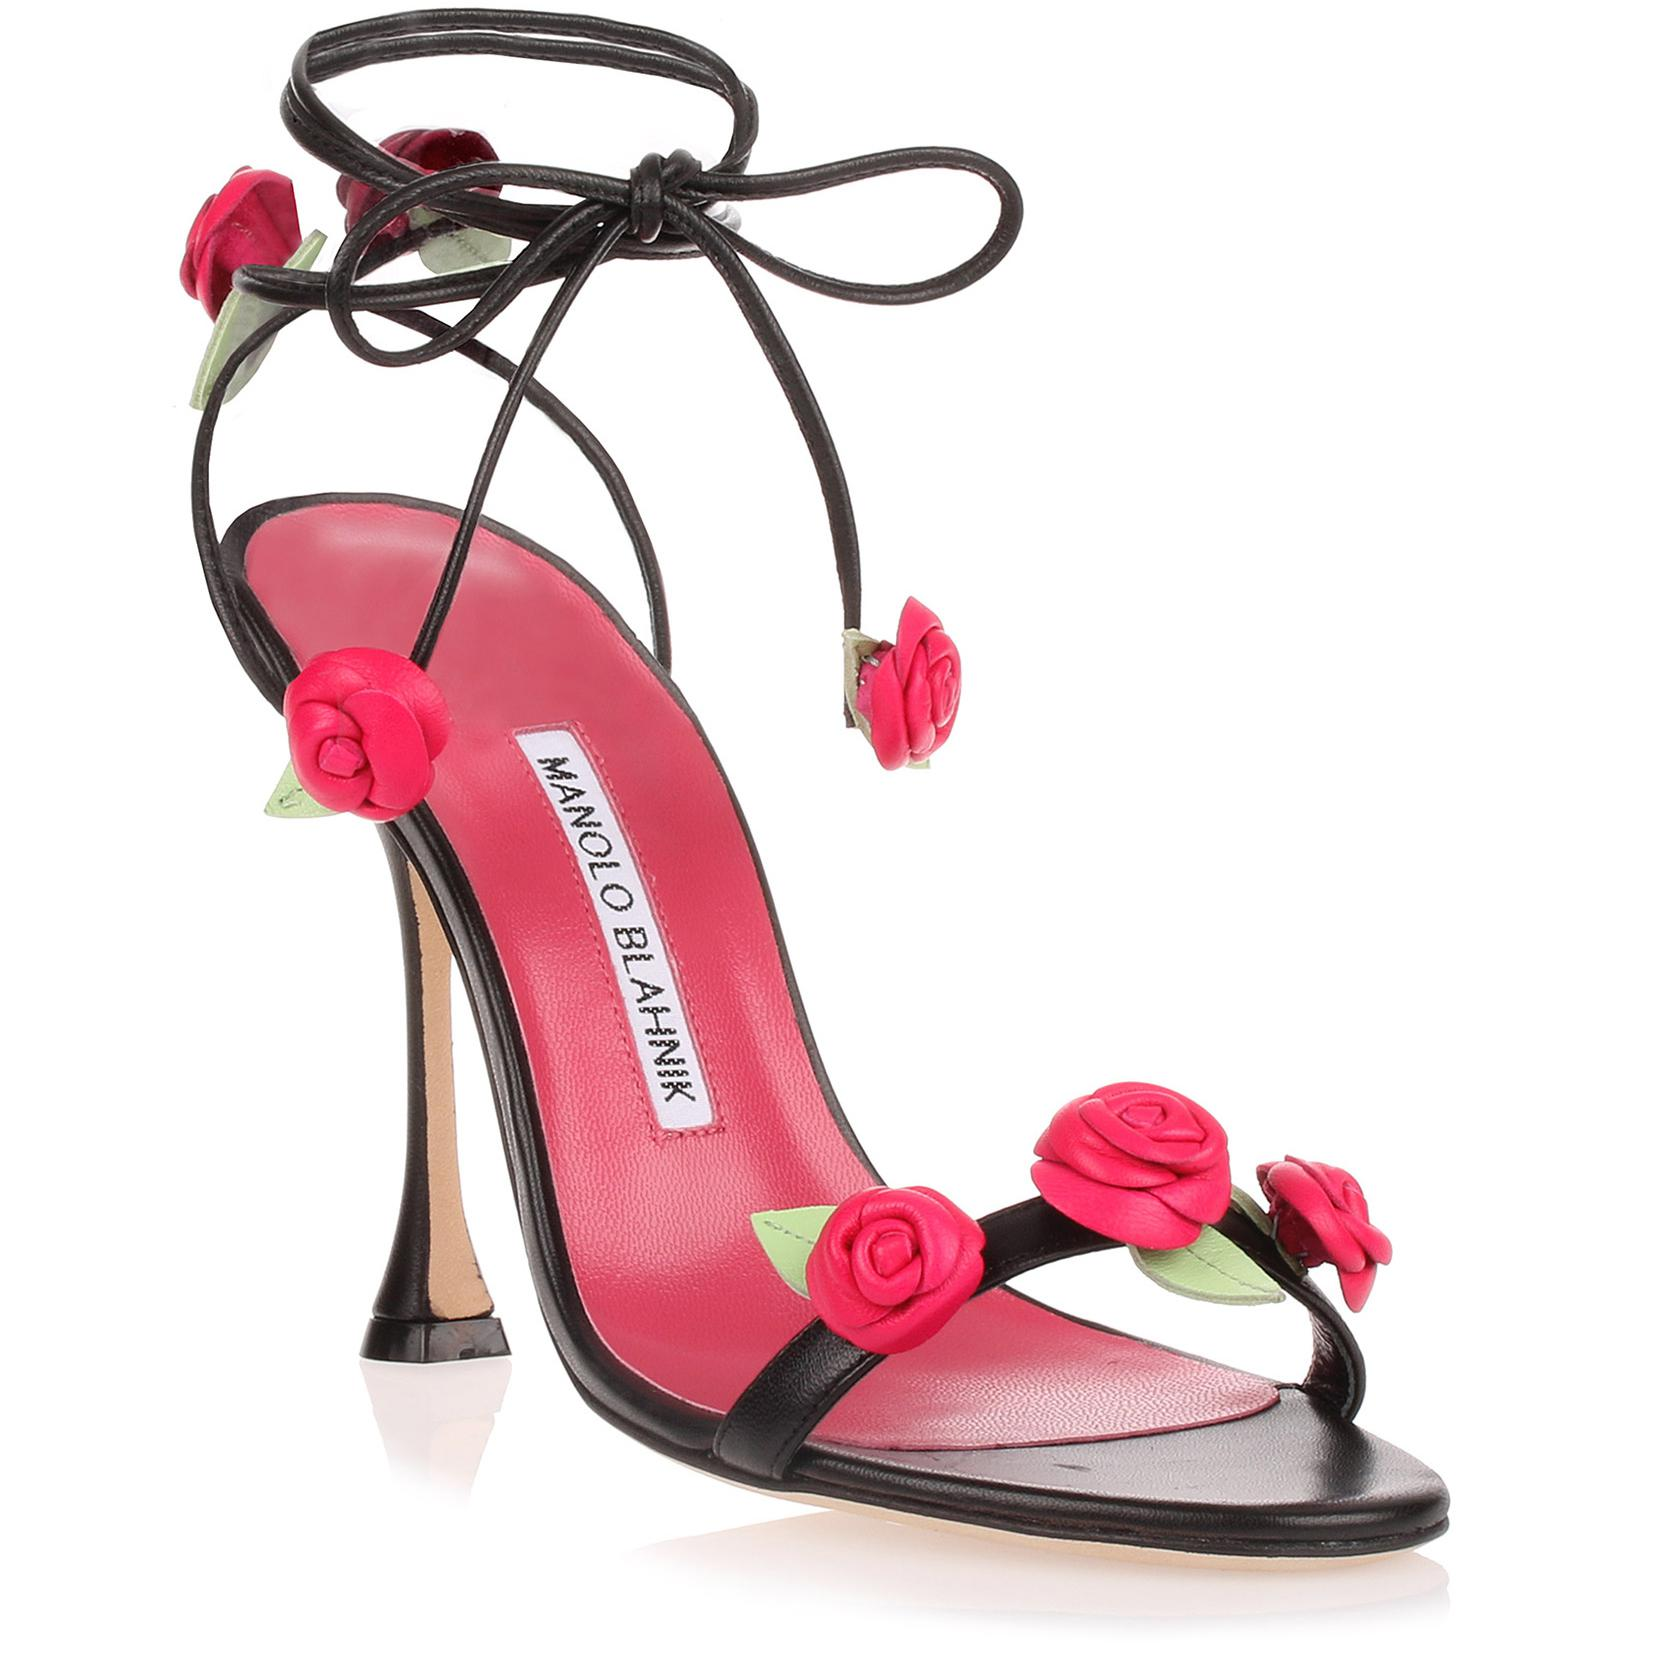 Xafiore black leather rose sandal Manolo Blahnik Clearance Real The Cheapest Cheap Price J24i3pFUj